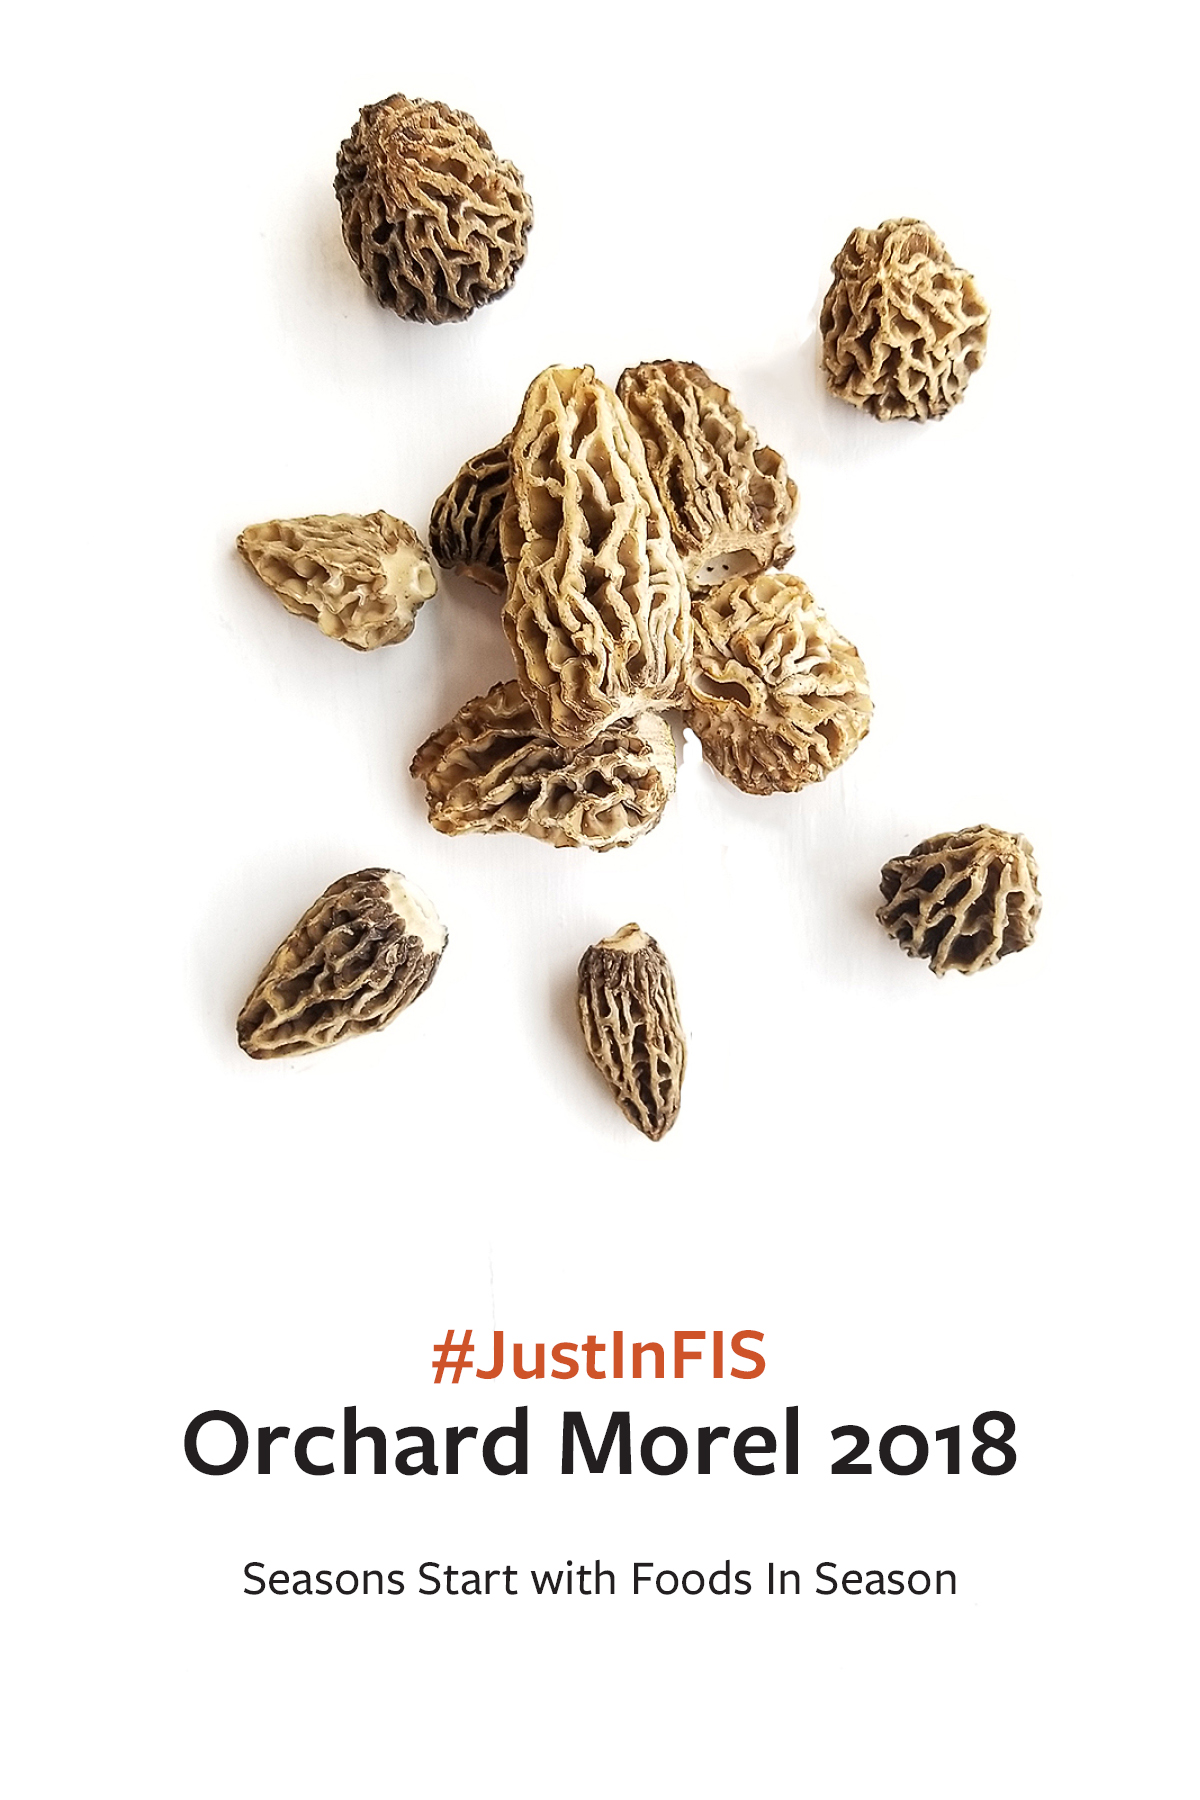 Orchard Morels are here